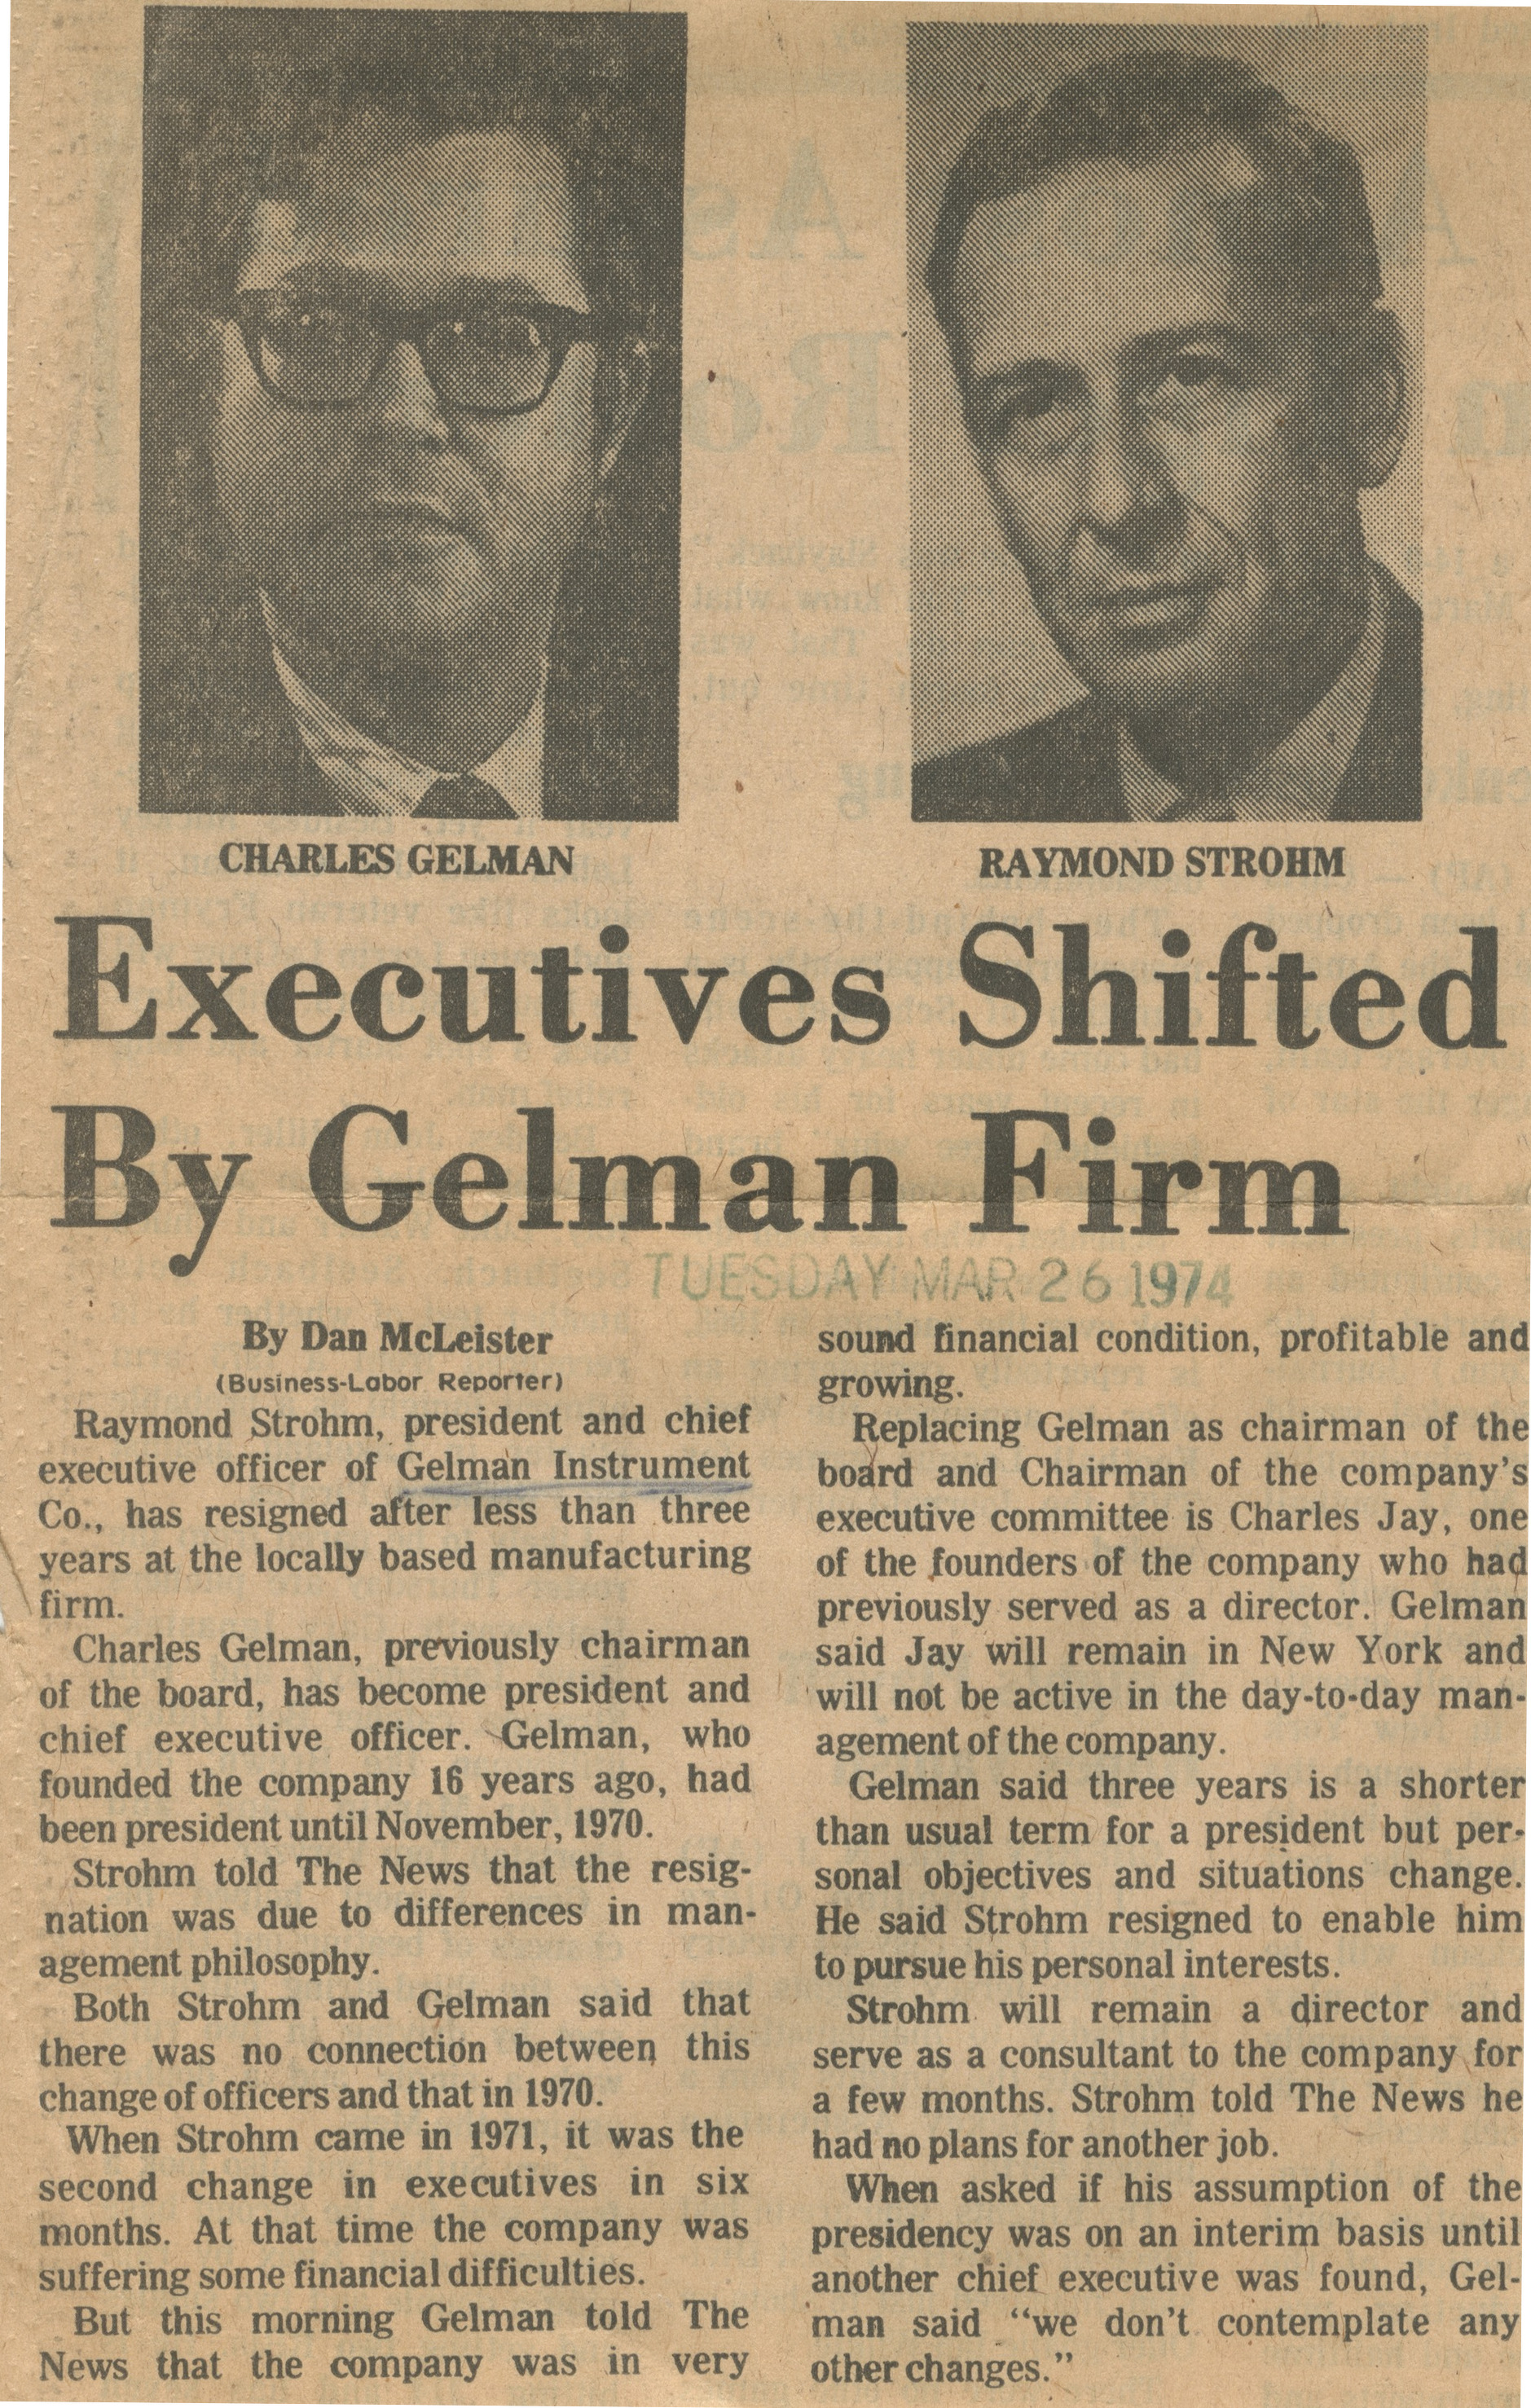 Executives Shifted By Gelman Firm image